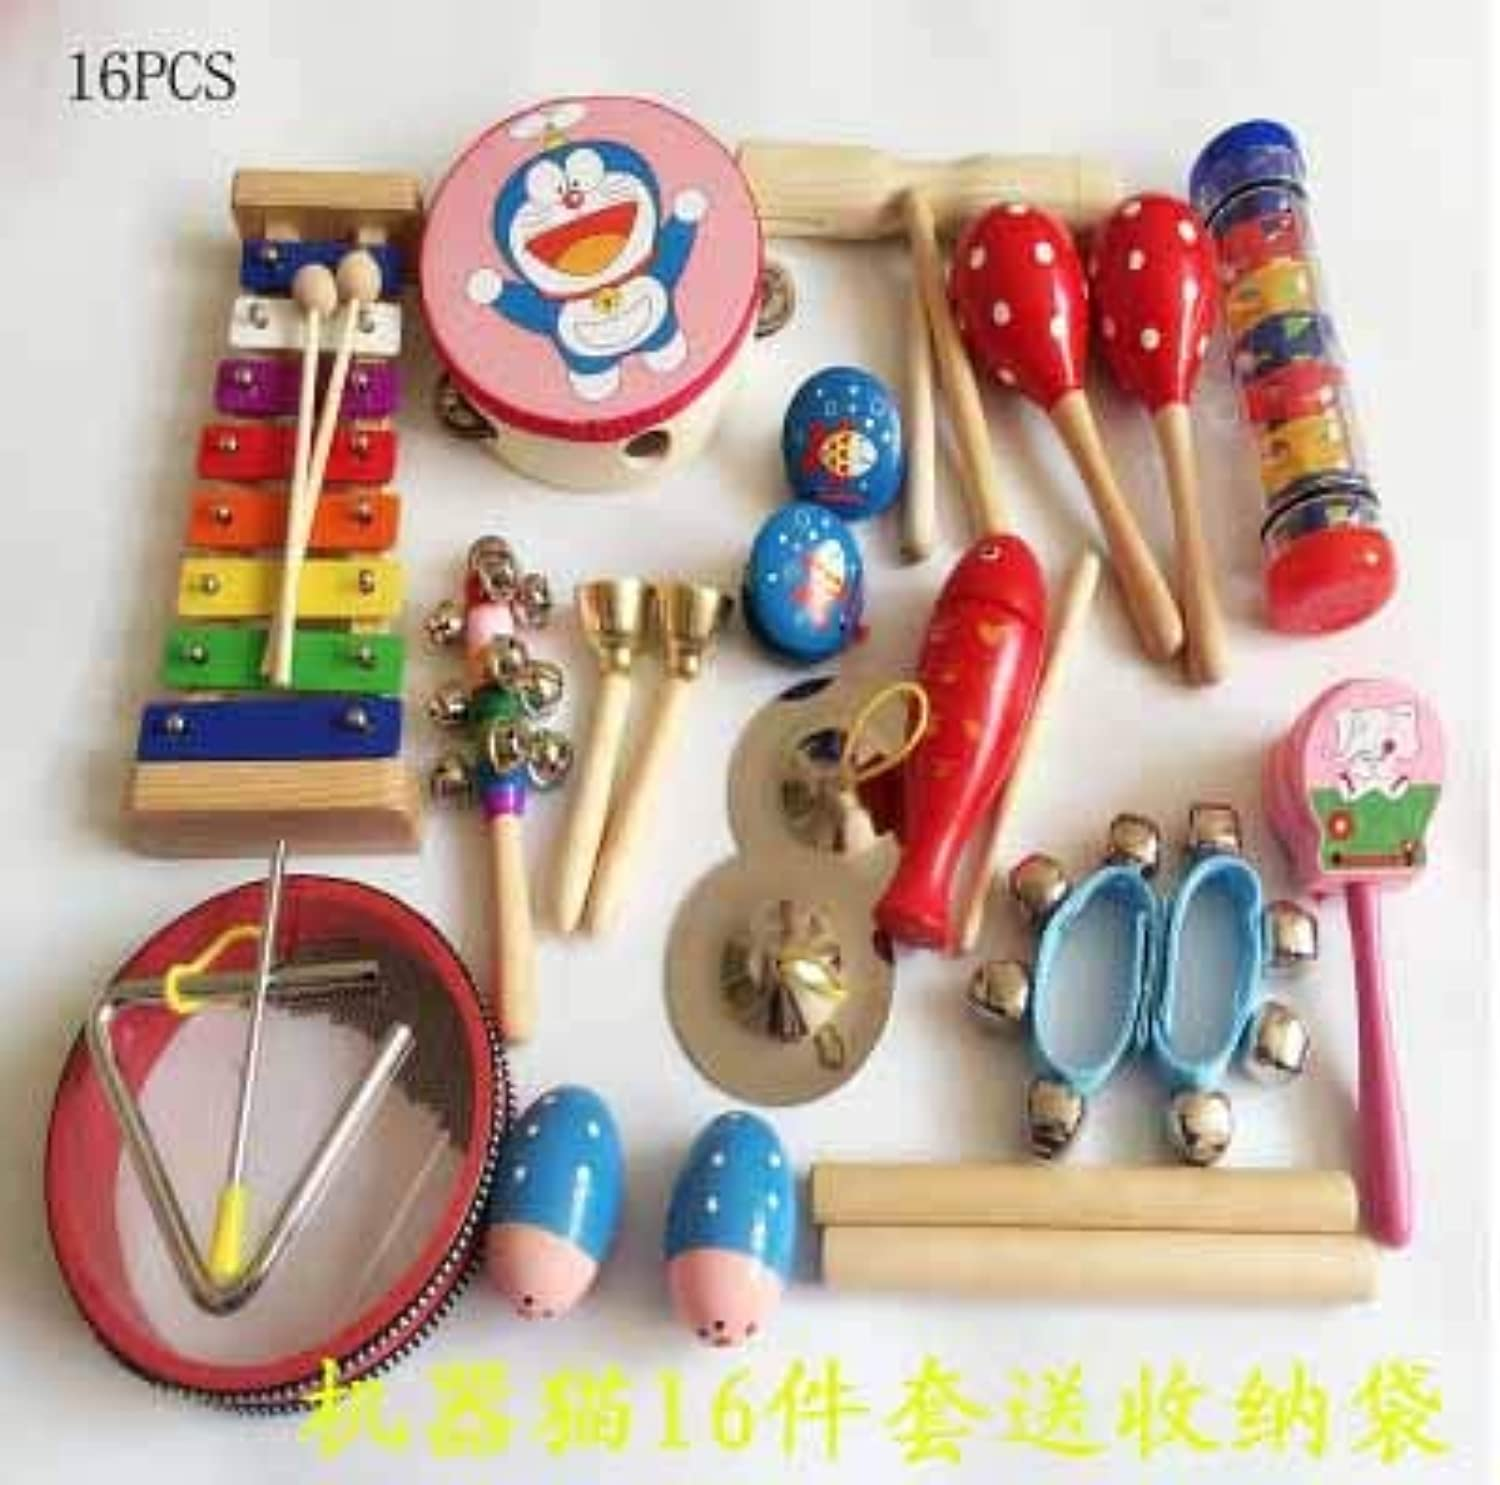 Xiao ping Ride On Toy, Ages 3 Yrs And Up – Wiggle For Endless Fun-Mute(No Music)